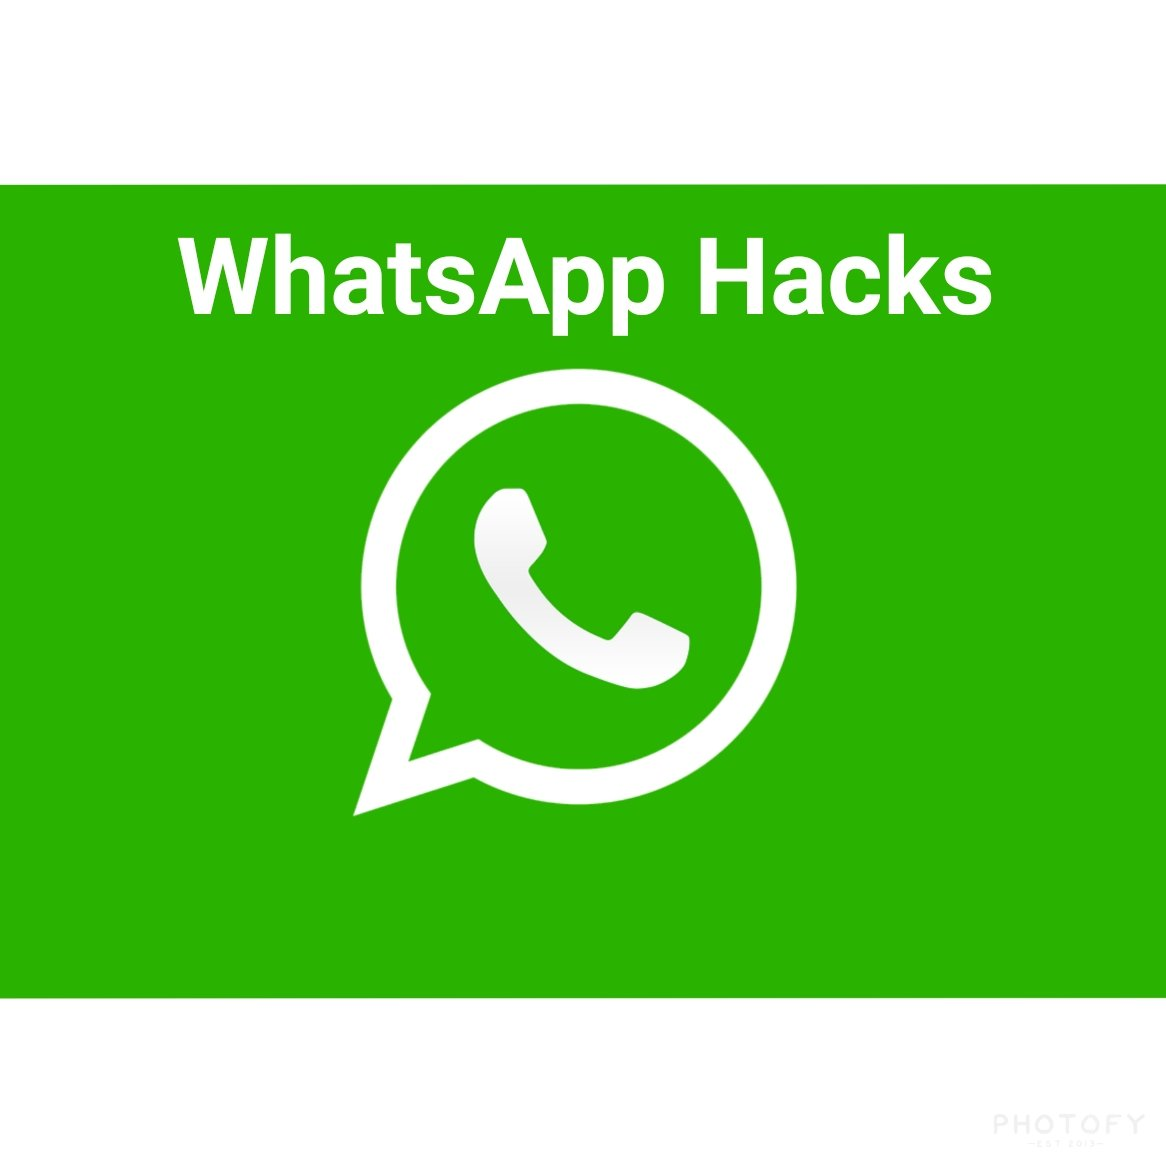 WhatsApp Hacks: How to get two WhatsApp on your iPhone